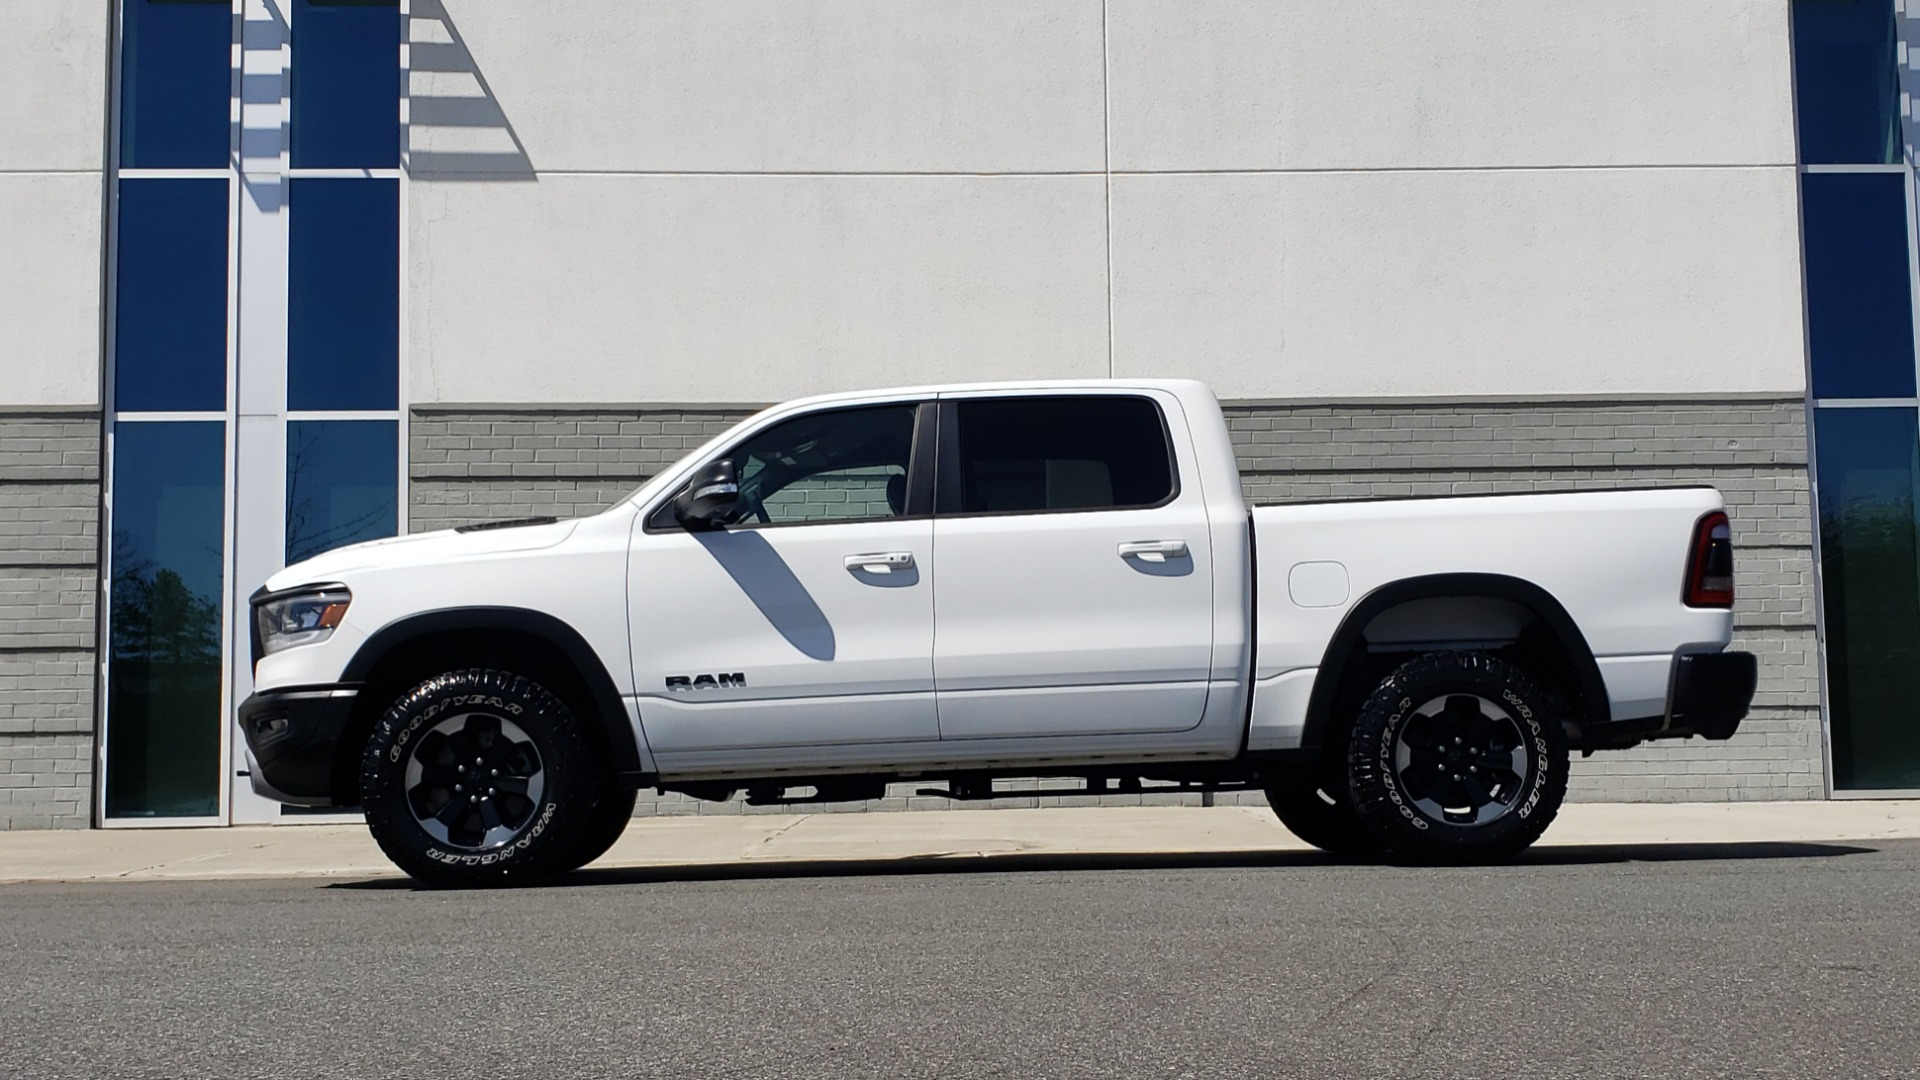 Used 2019 Ram 1500 REBEL CREWCAB 4X4 / 5.7L V8 HEMI / 8-SPD AUTO / REARVIEW for sale Sold at Formula Imports in Charlotte NC 28227 4